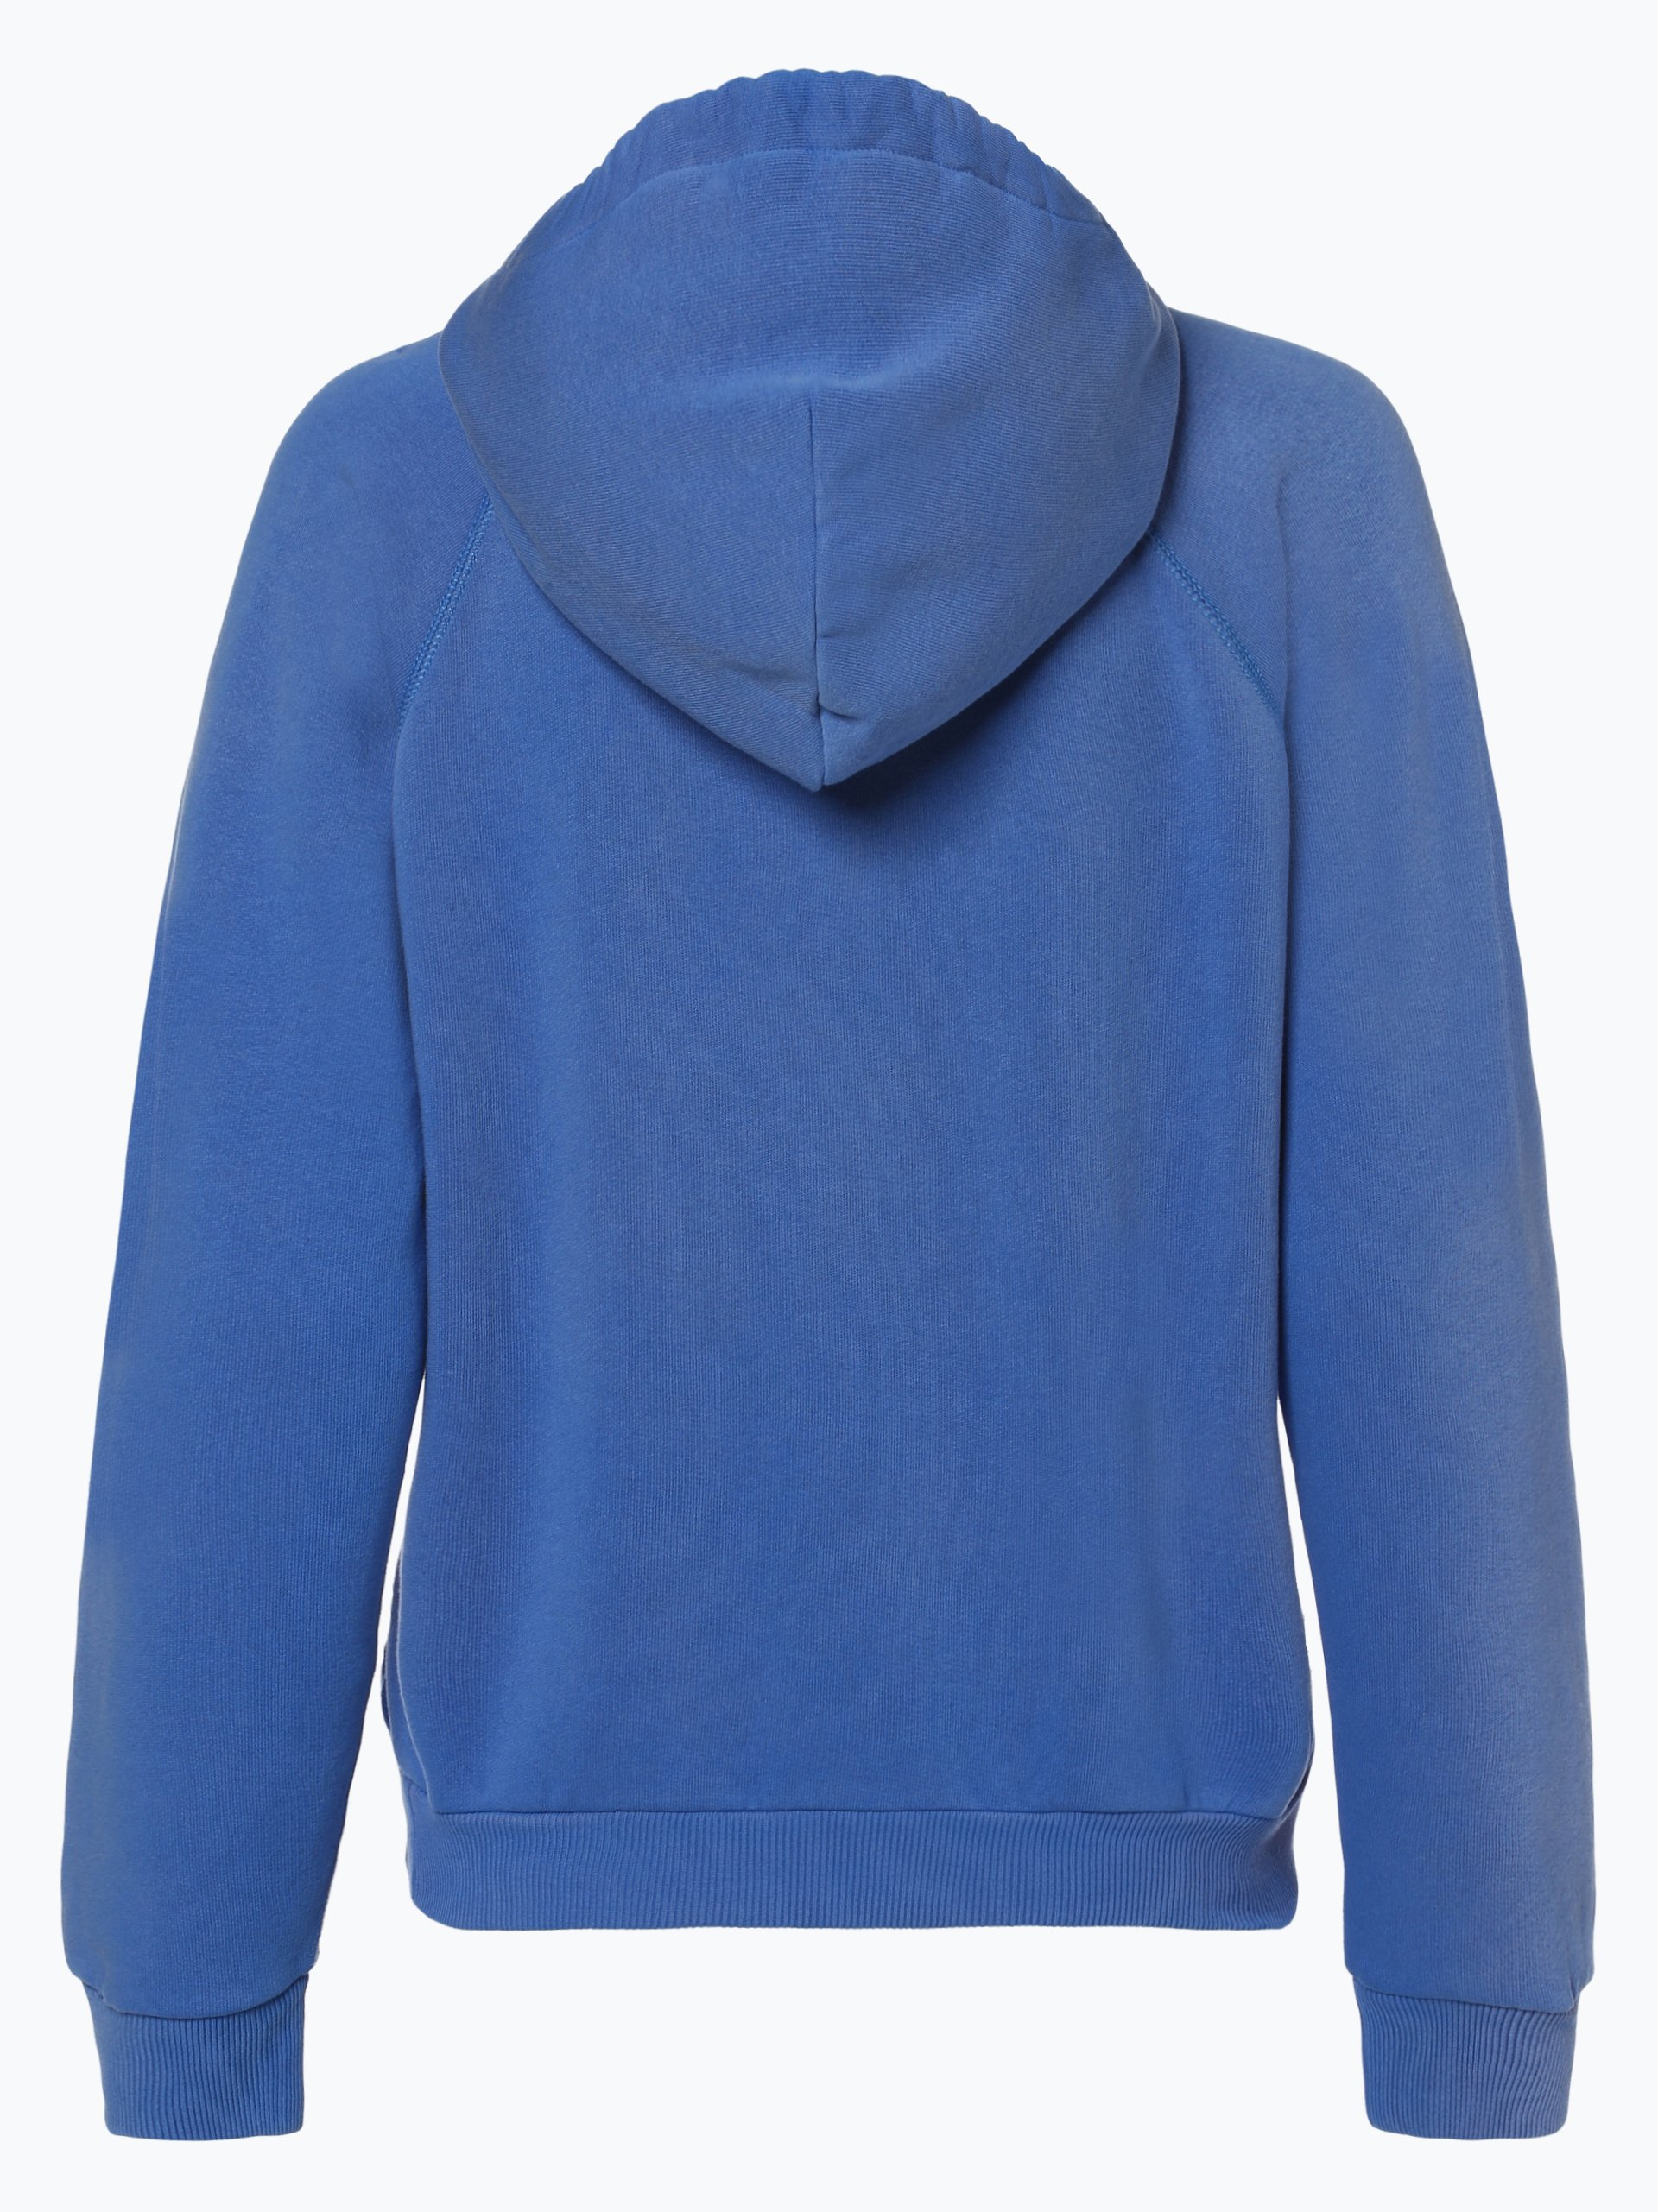 Polo Ralph Lauren Damen Sweatshirt